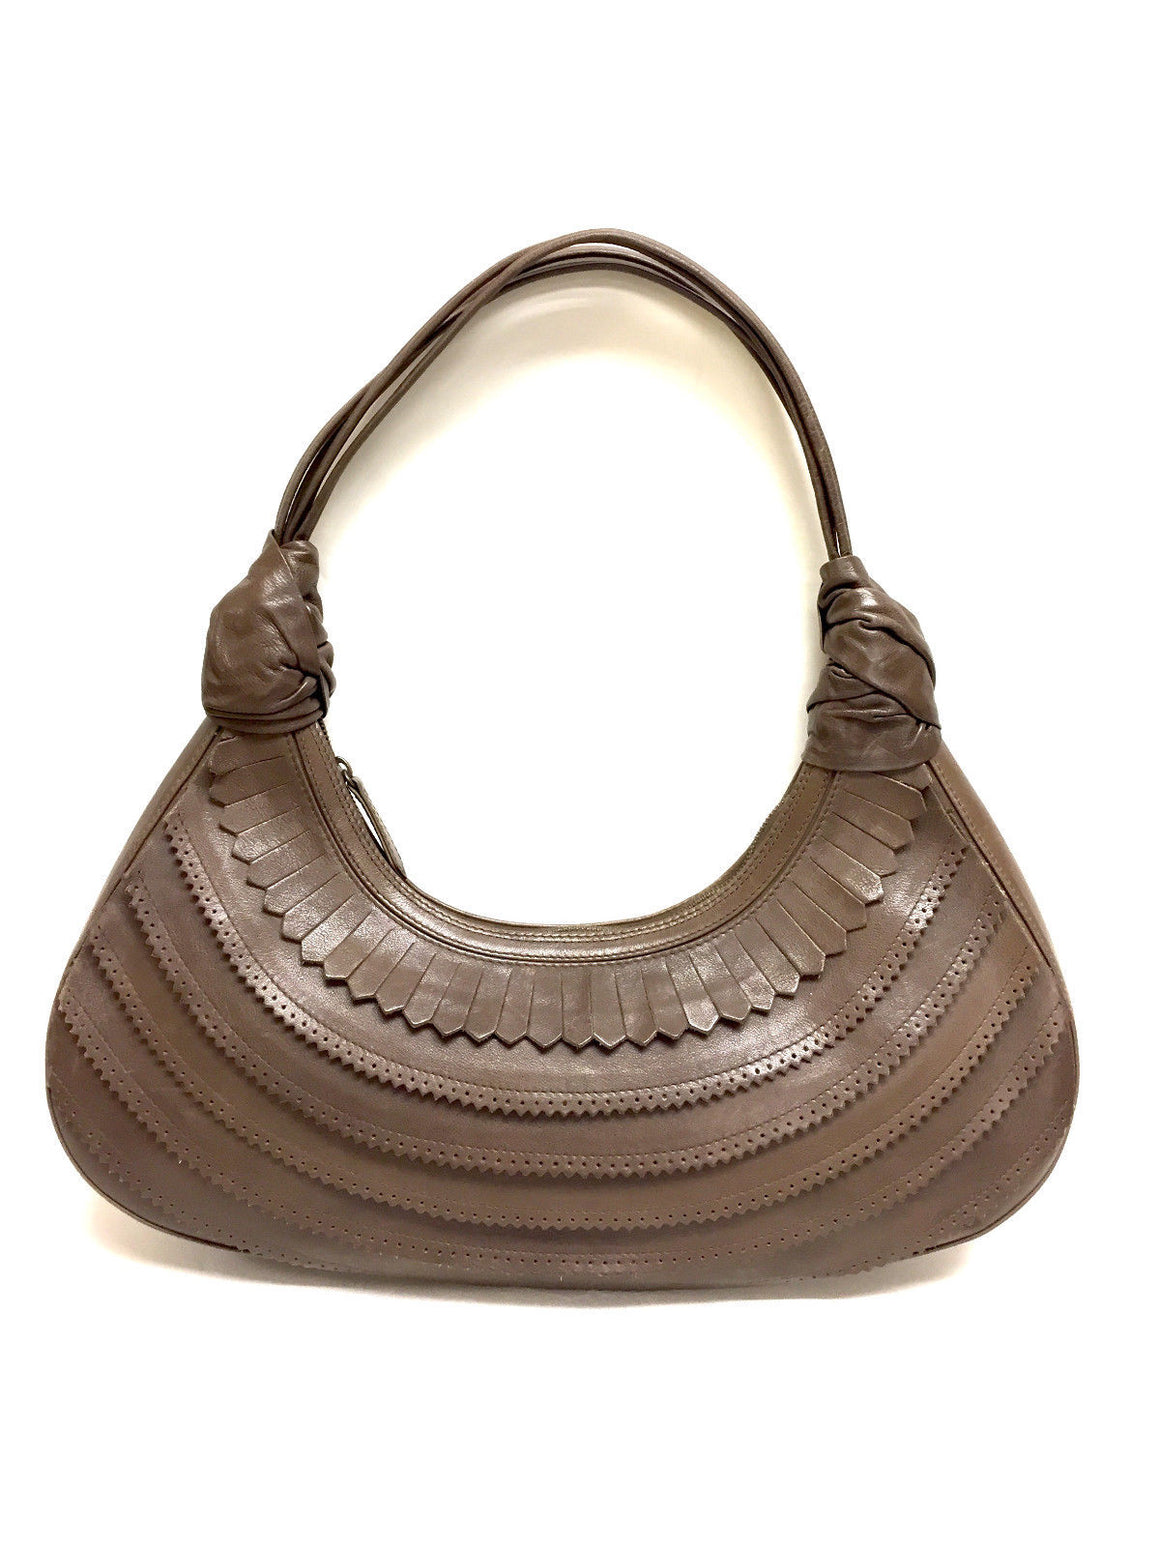 bisbiz.com CHRISTIAN LOUBOUTIN Brown Leather Tiered Hobo Shoulder Bag - Bis Luxury Resale